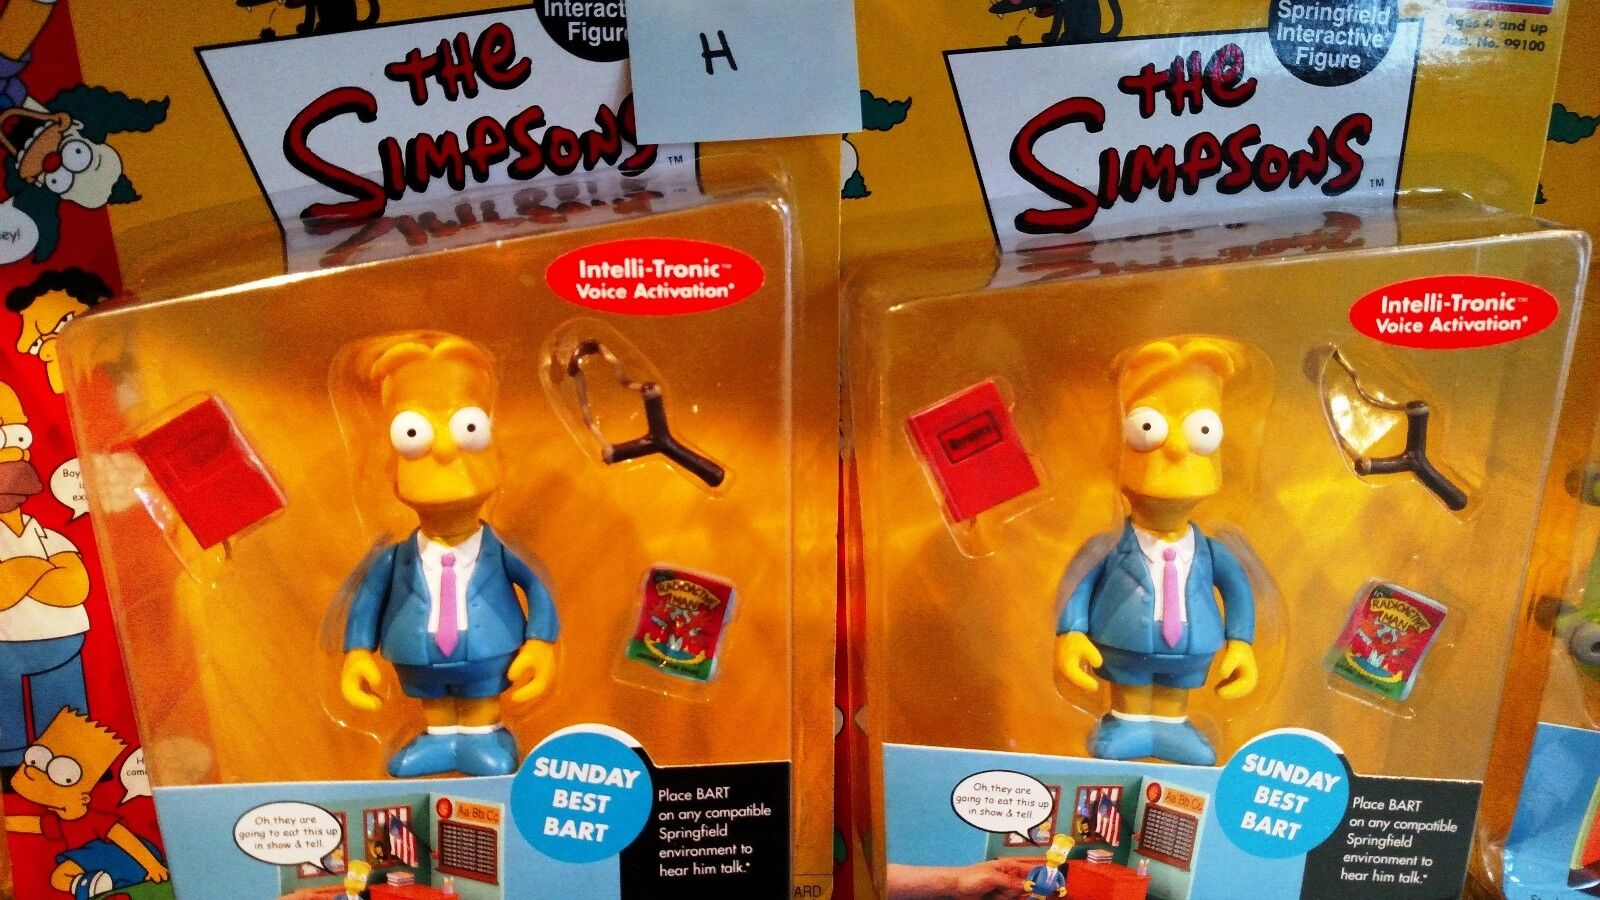 H (4)Simpsons värld of Springfield Figures Darödevil Bkonst variant Sunday Bkonst